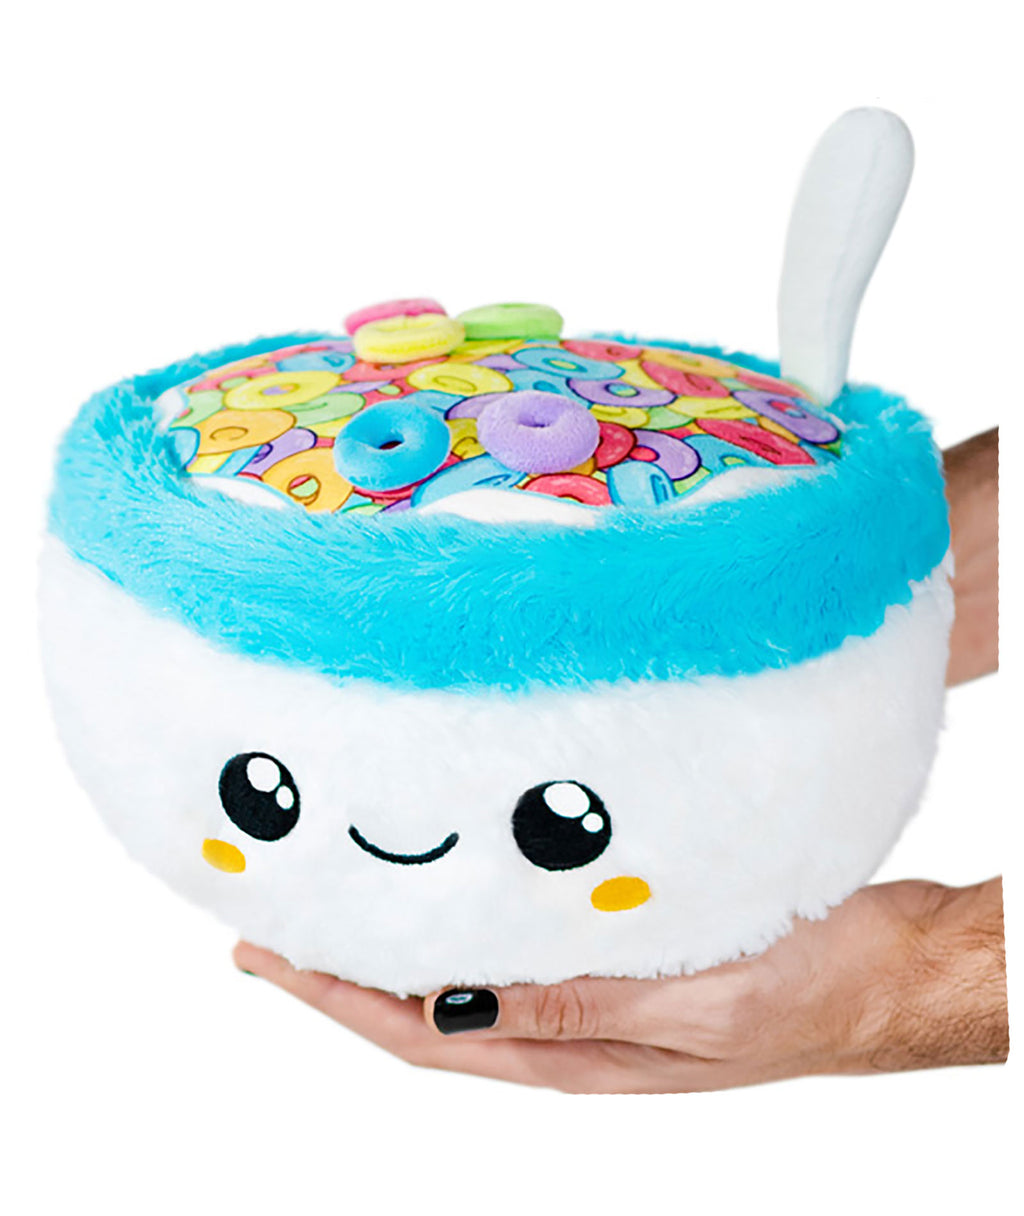 Squishable Mini Cereal Bowl